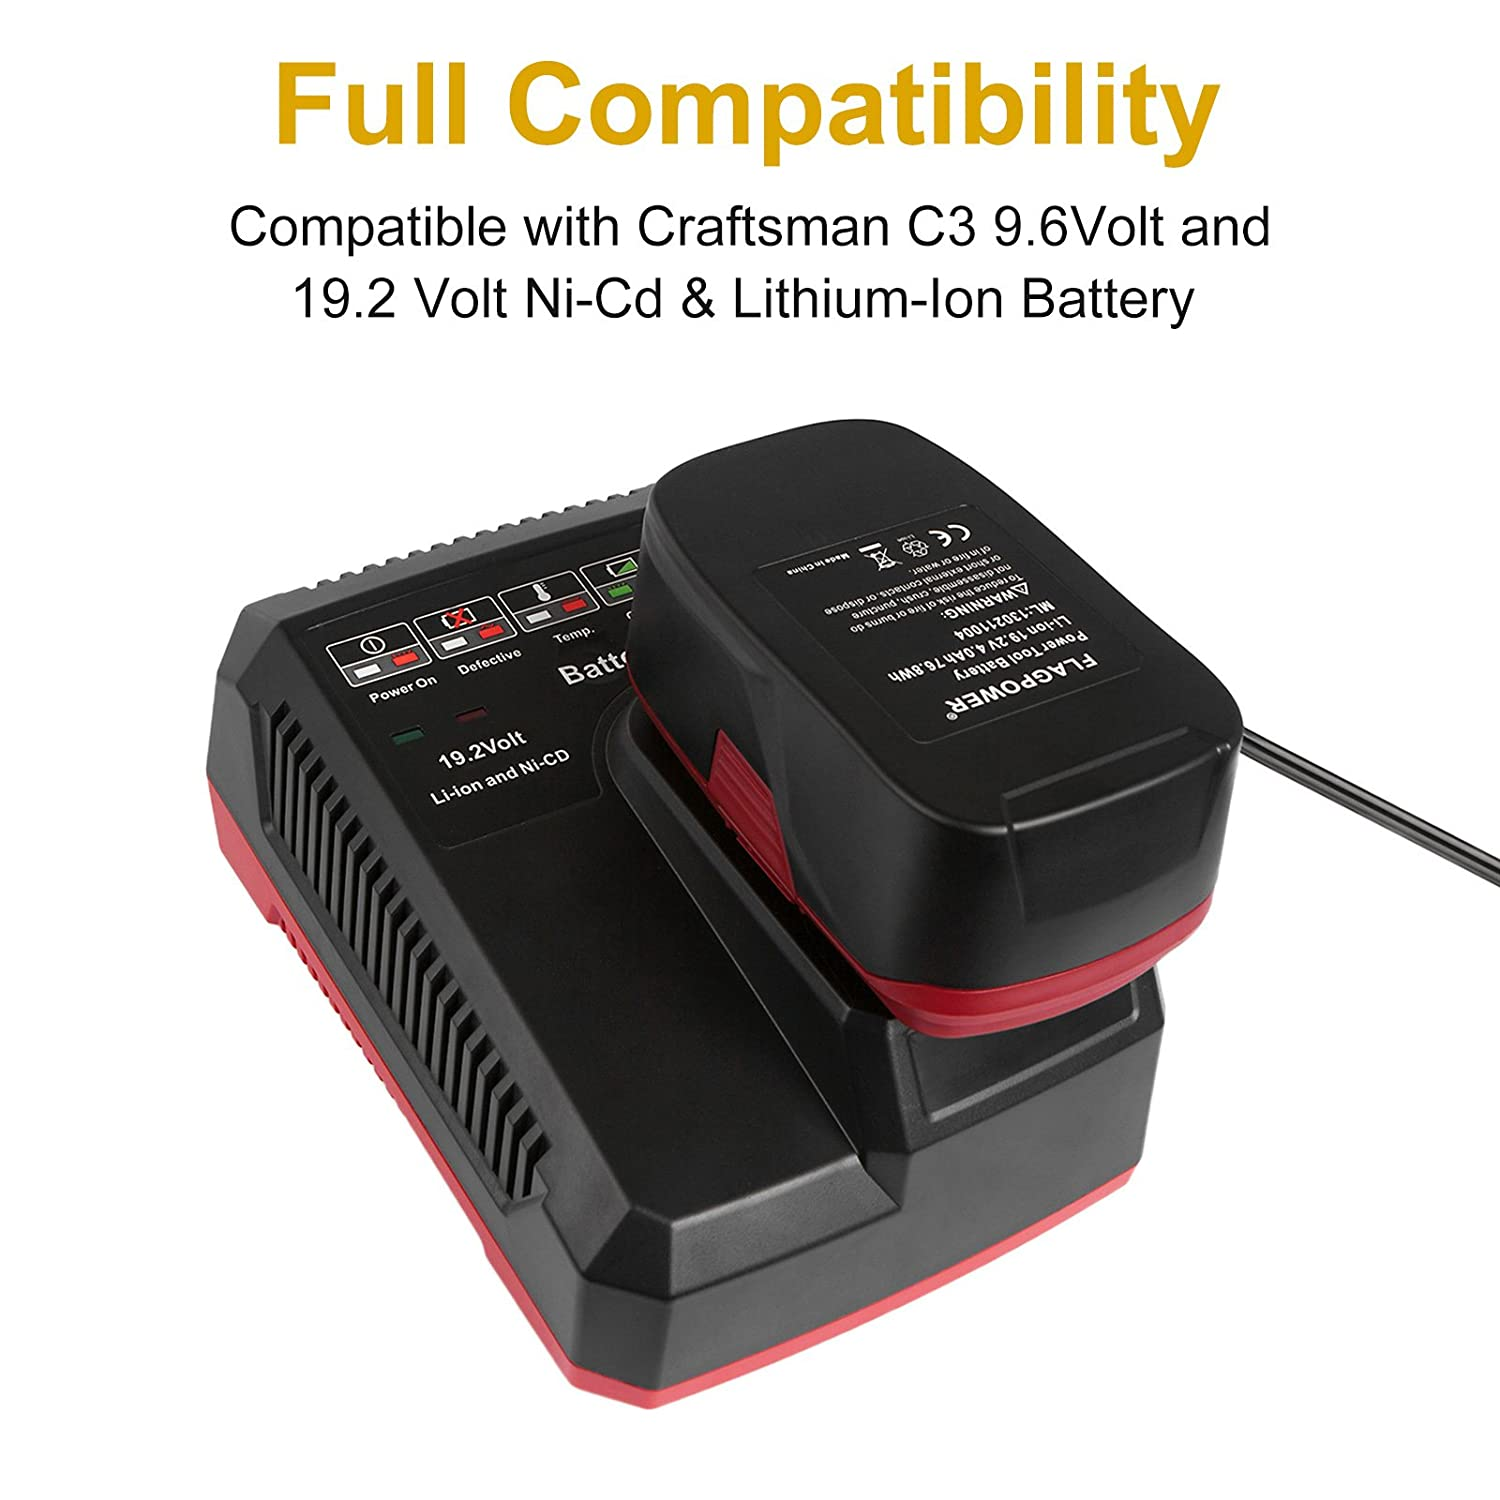 FLAGPOWER Li ion & Ni cad Battery Charger 19 2V MAX For Craftsman C3 DieHard XCP pact battery Amazon